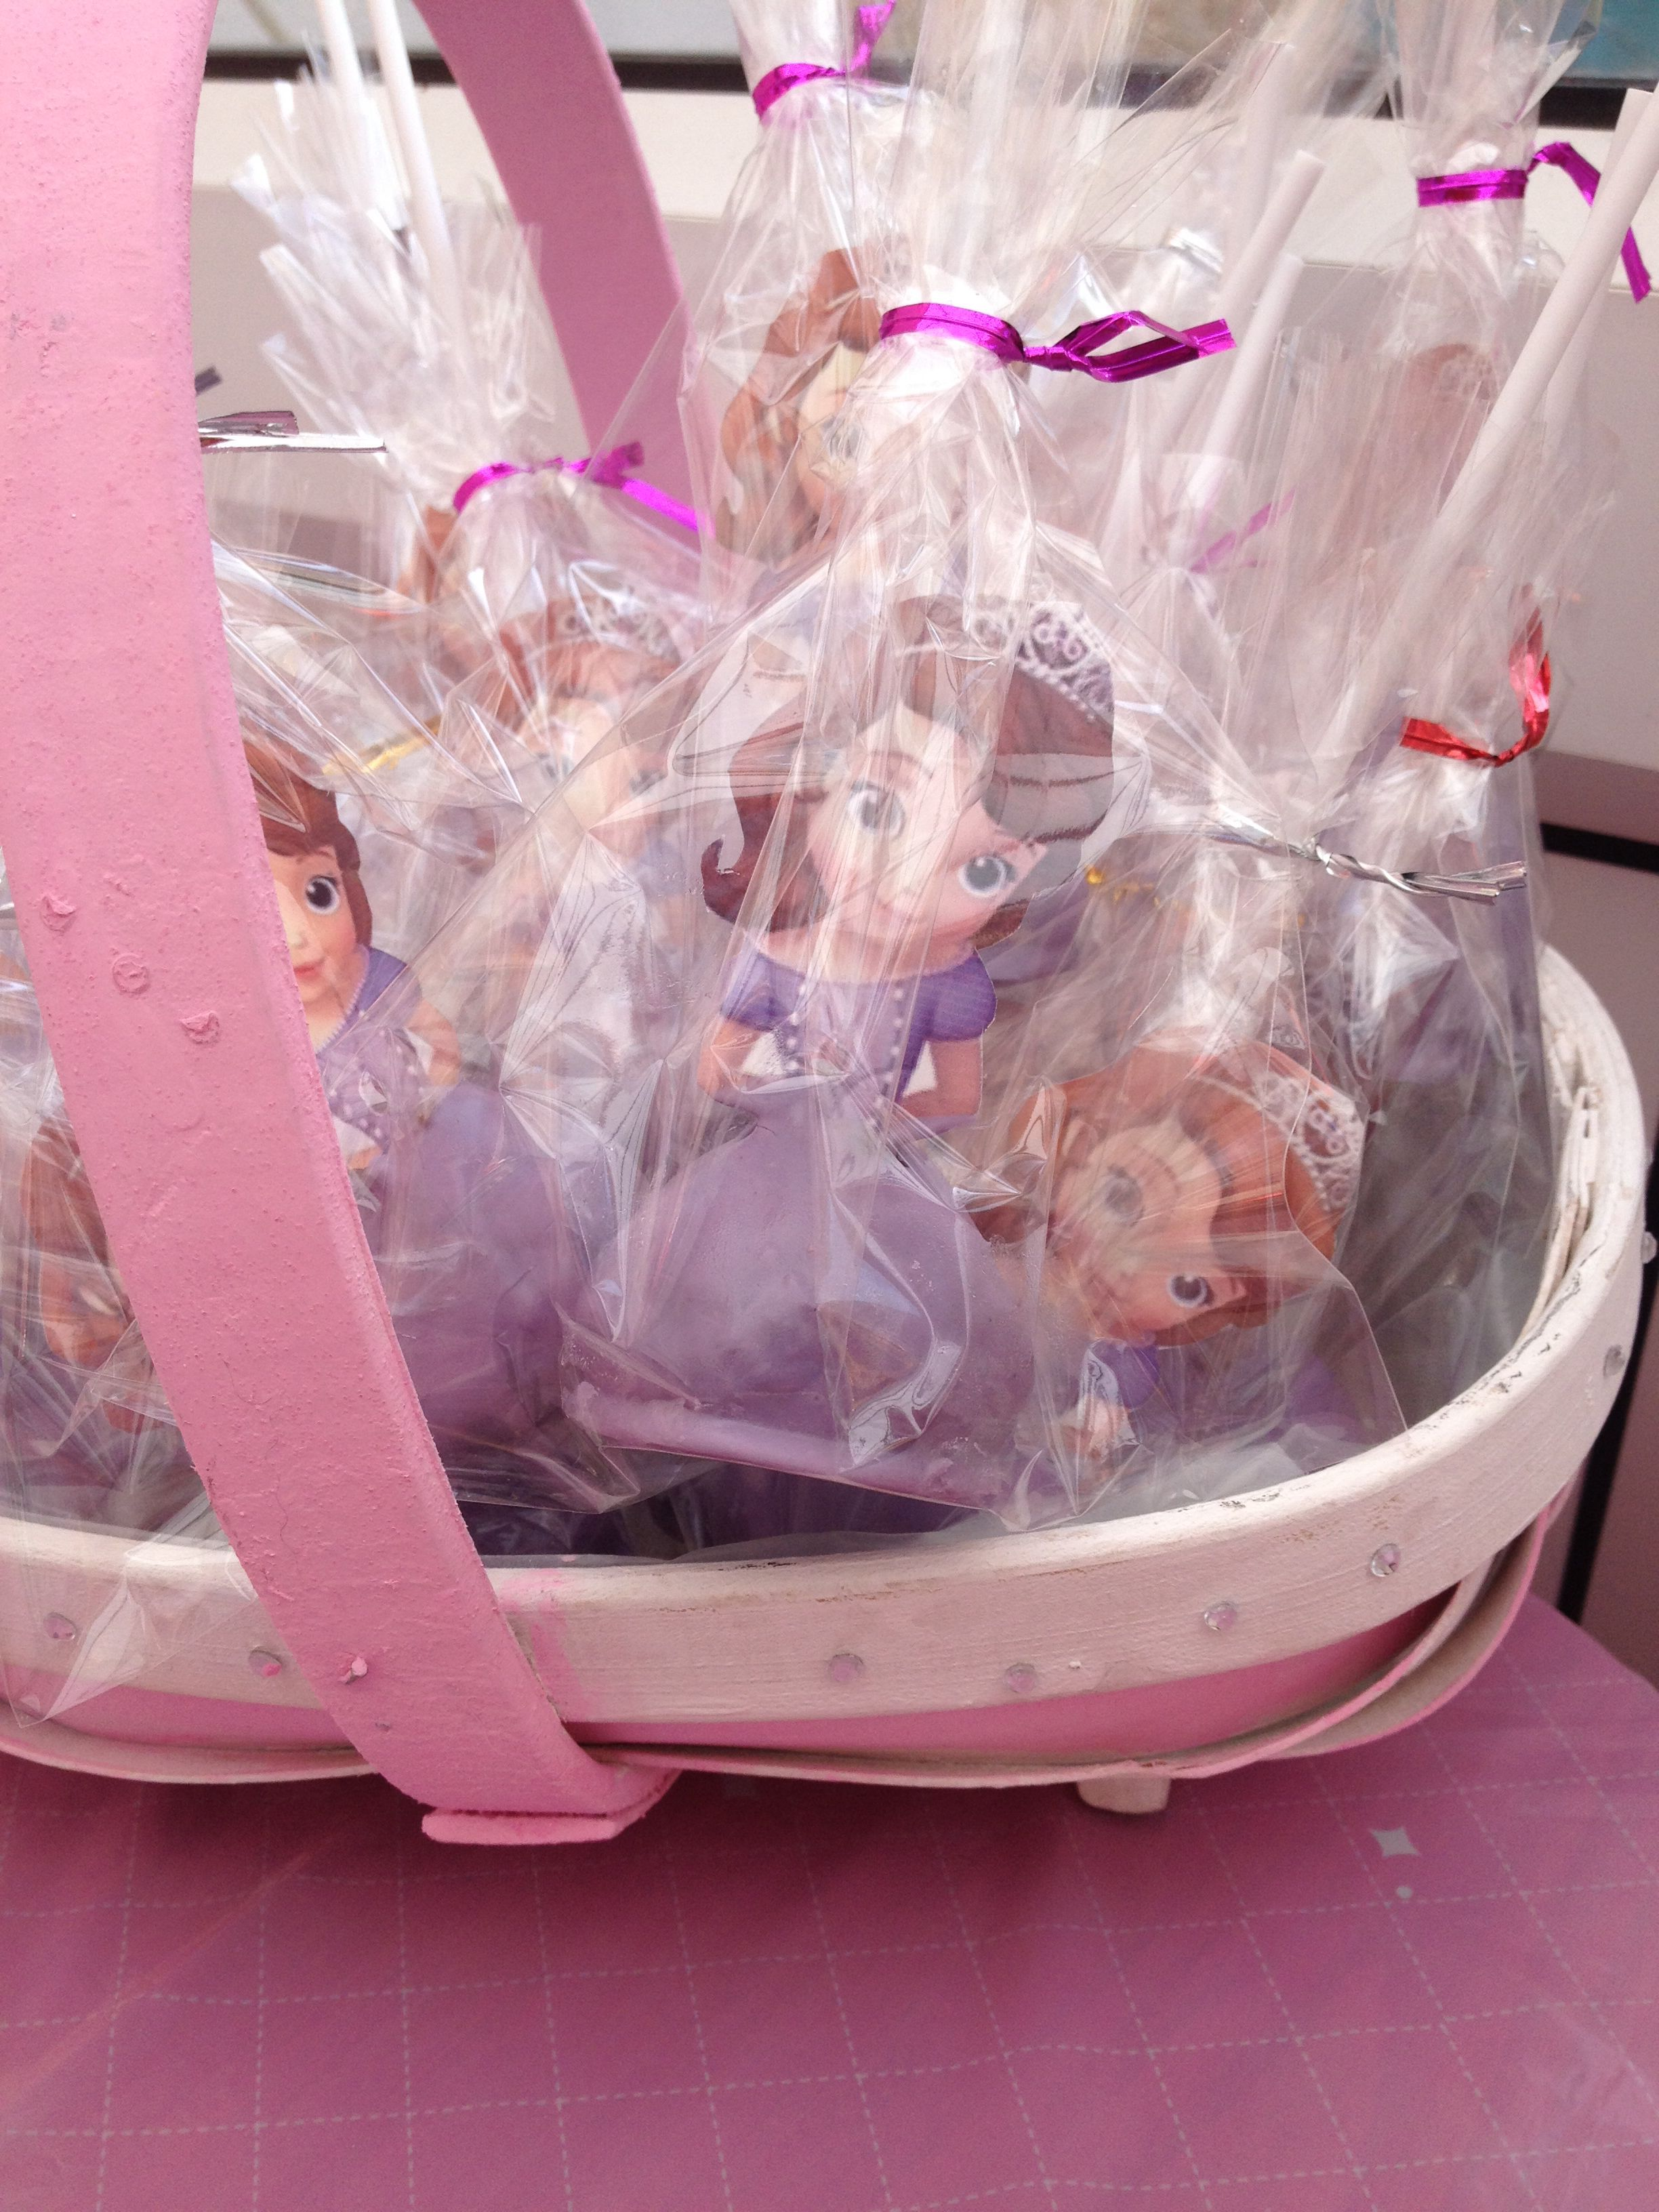 Sofia the first cake pops (Isabelle's 2nd birthday party)